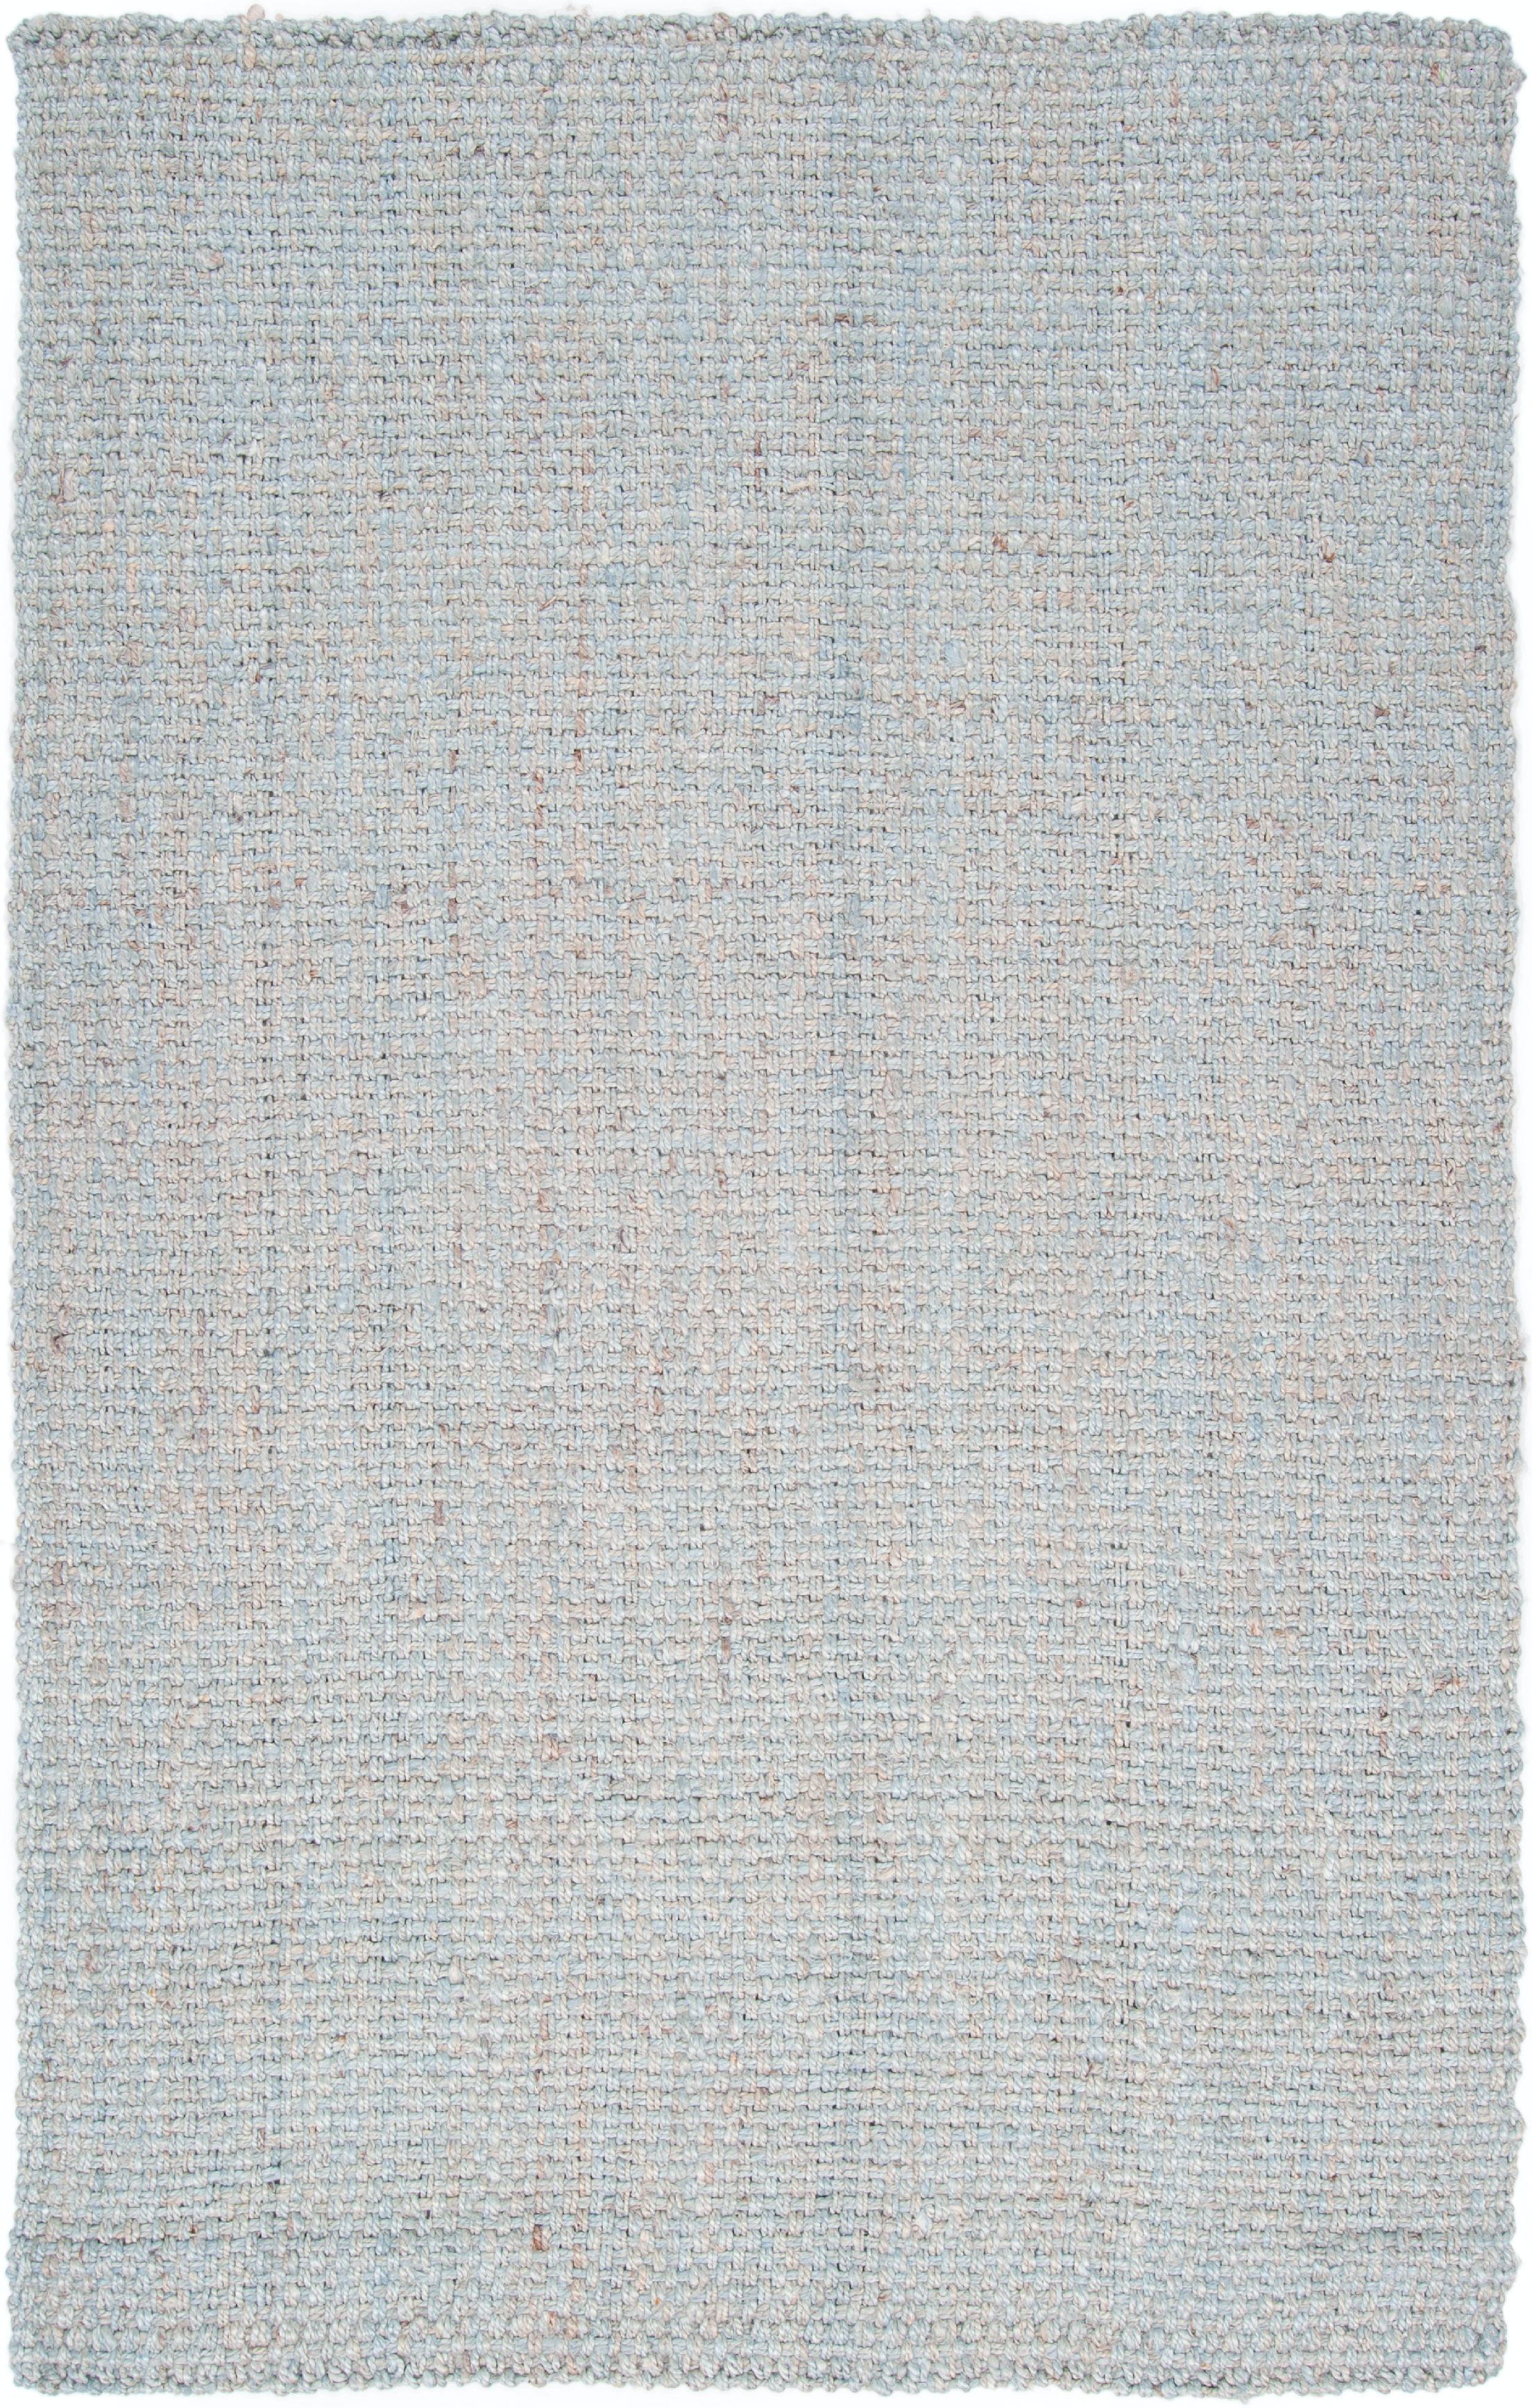 Surya Floor Coverings Jute Woven Area Rug Js220 Upper